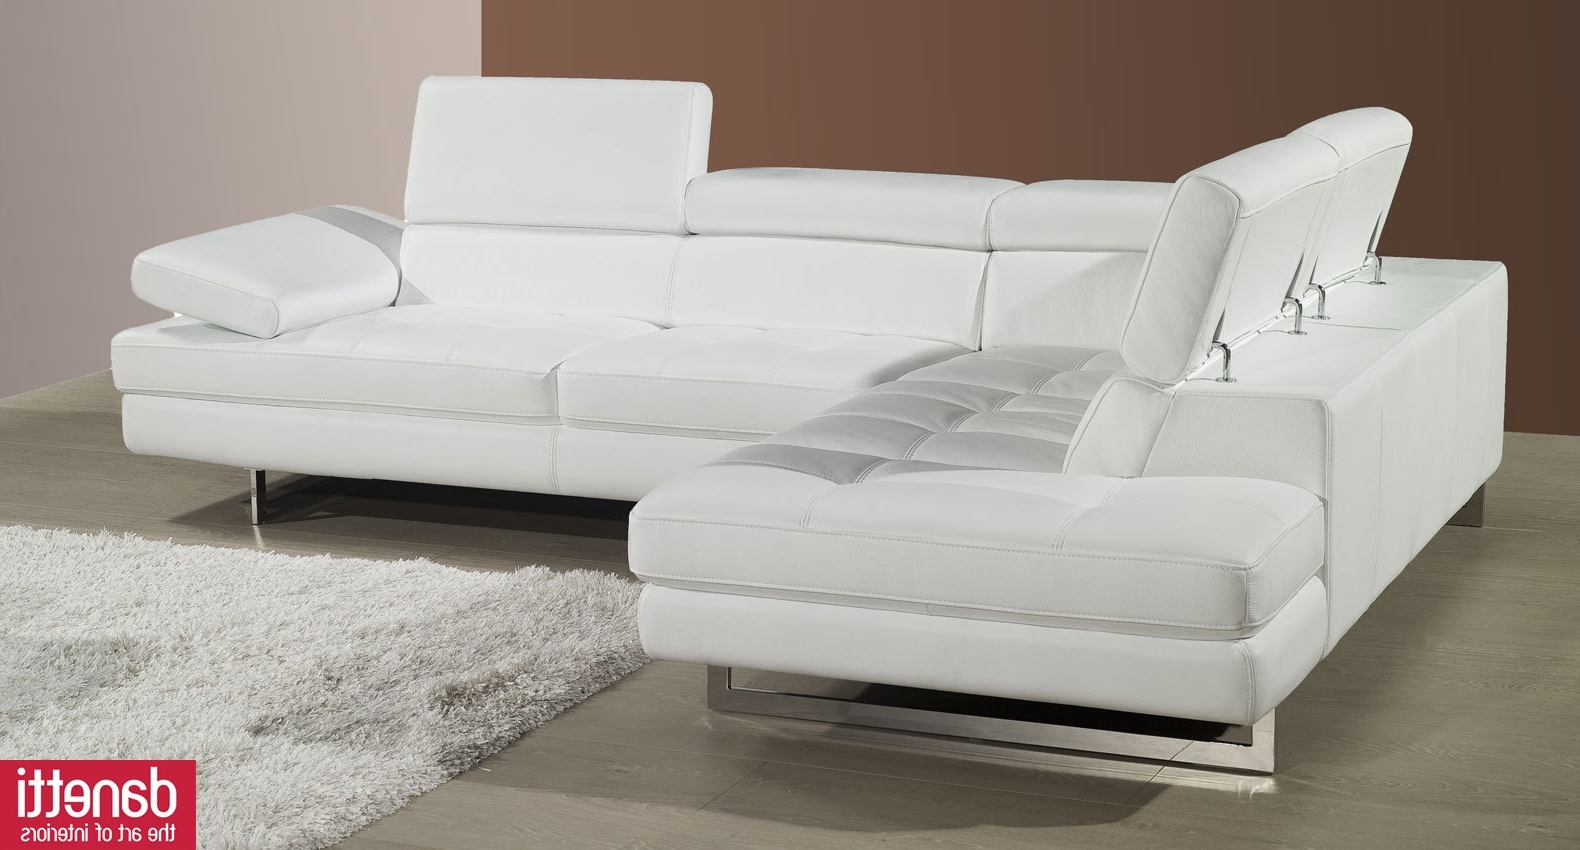 Most Popular Beautiful White Leather Modern Sofa 85 On Modern Sofa Inspiration Pertaining To White Modern Sofas (View 11 of 15)